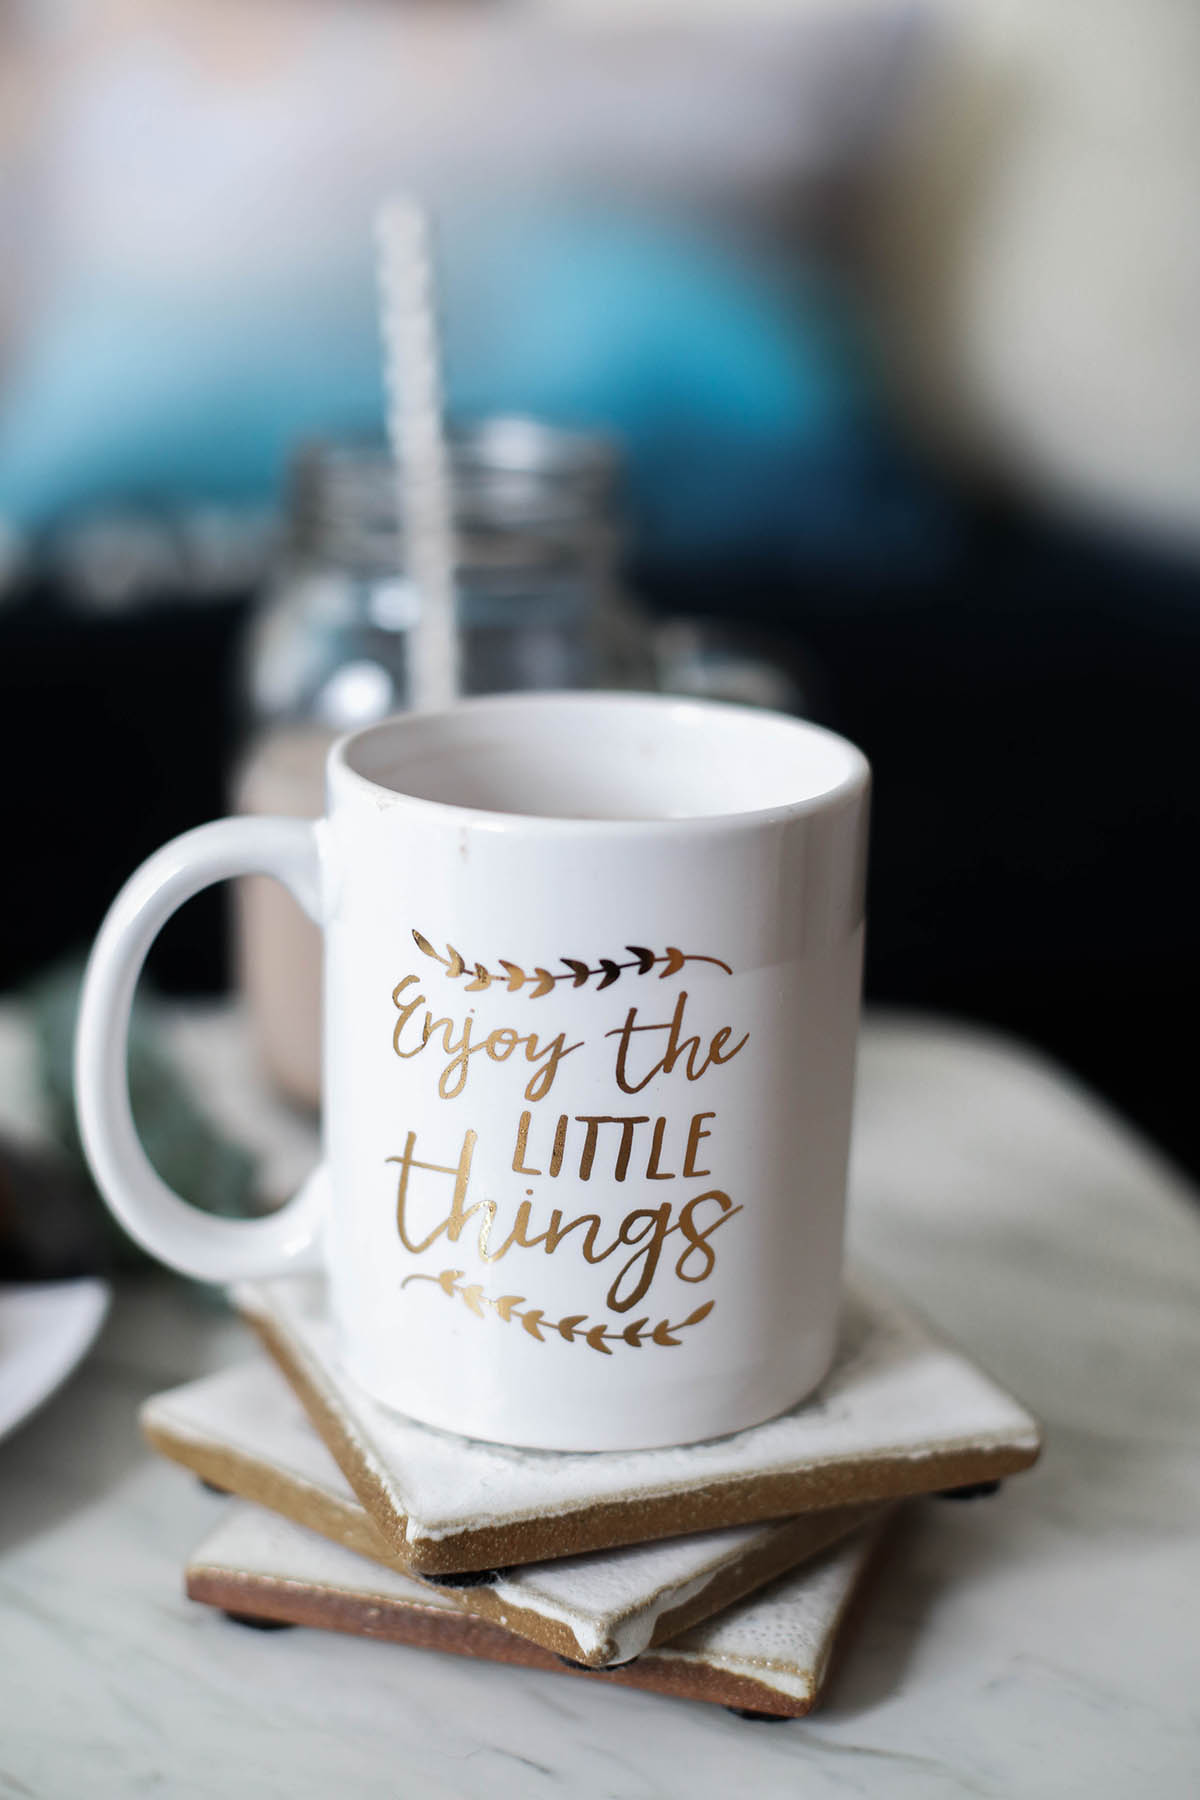 custom mugs from shutterfly